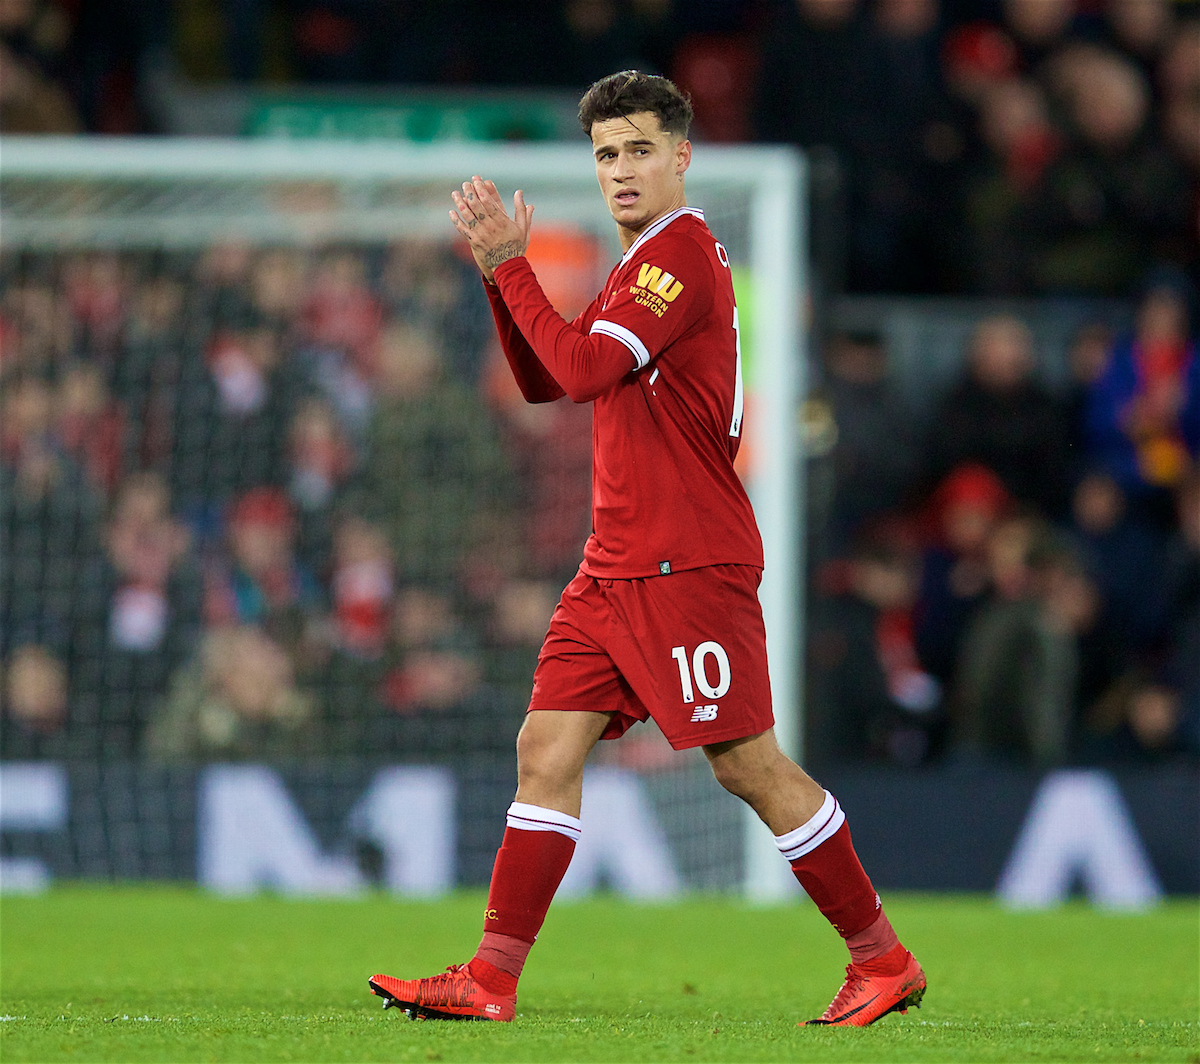 LIVERPOOL, ENGLAND - Saturday, December 30, 2017: Liverpool's Philippe Coutinho Correia applauds the supporters as he is substituted during the FA Premier League match between Liverpool and Leicester City at Anfield. (Pic by David Rawcliffe/Propaganda)